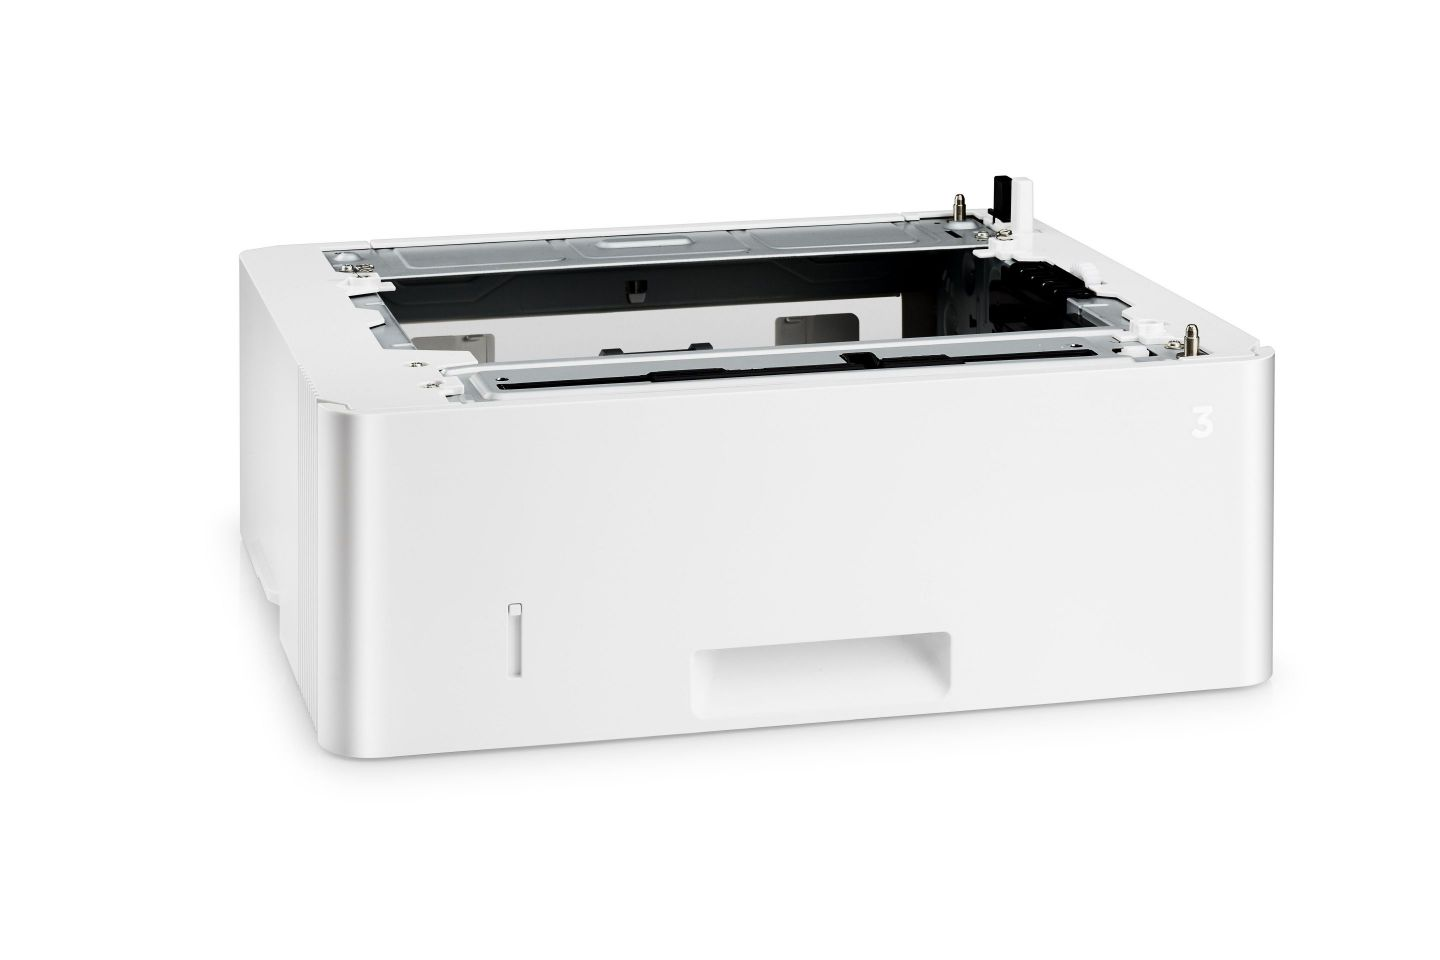 Ver HP LaserJet Pro 550 sheet Feeder Tray